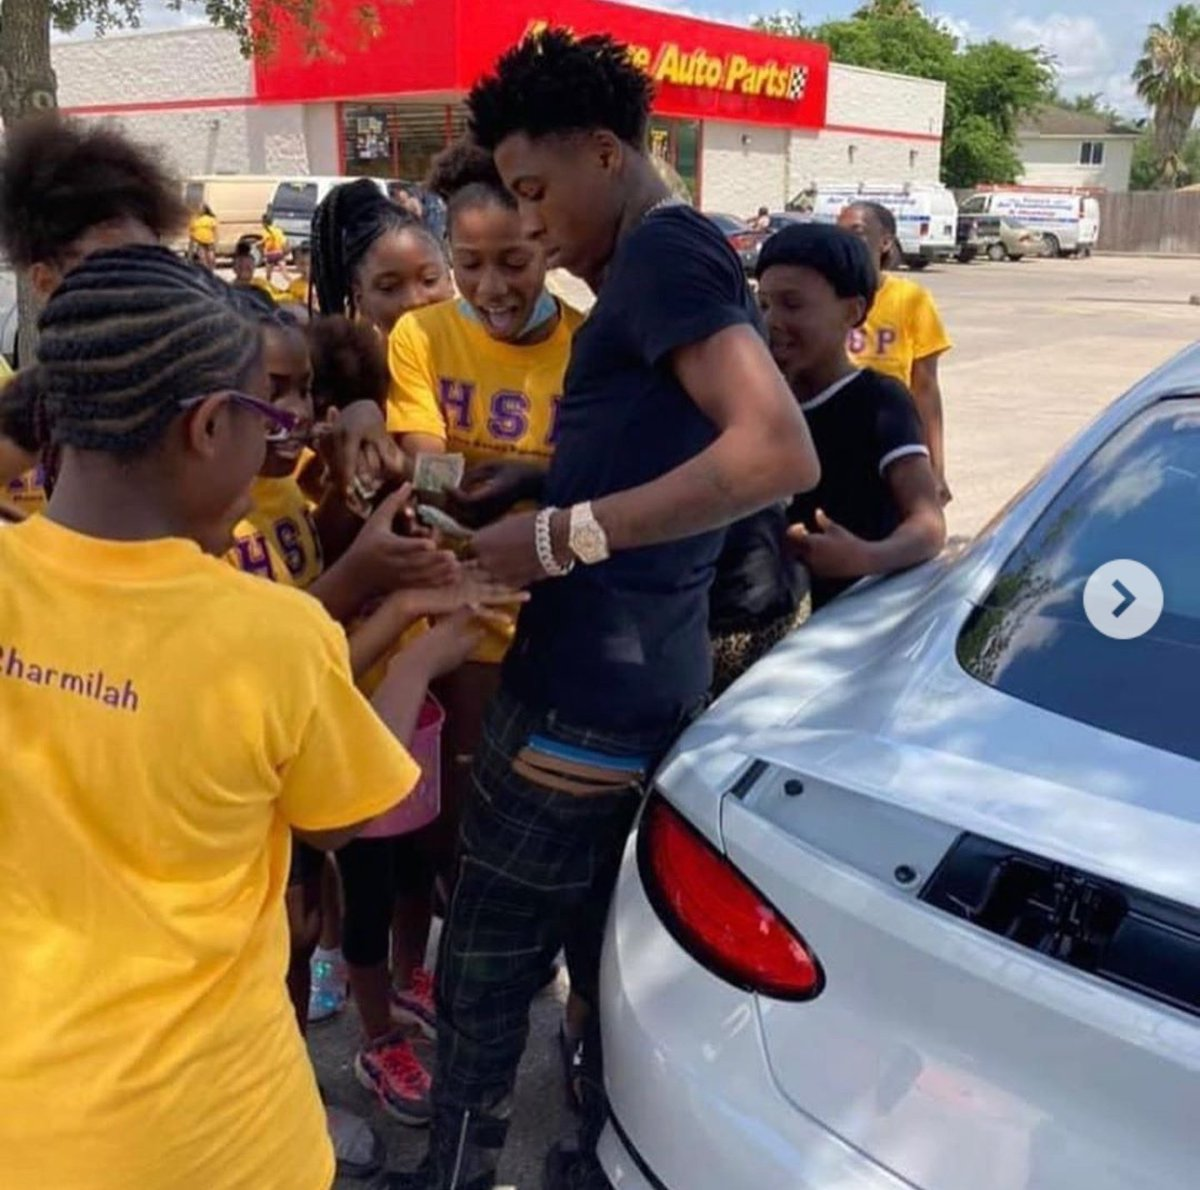 Flyestaround On Twitter Nba Youngboy Donated 5 000 To The Houston Sassy Pantherettes Dance At They Car Wash To Raise Money For New Uniforms Https T Co Dosxac4oac